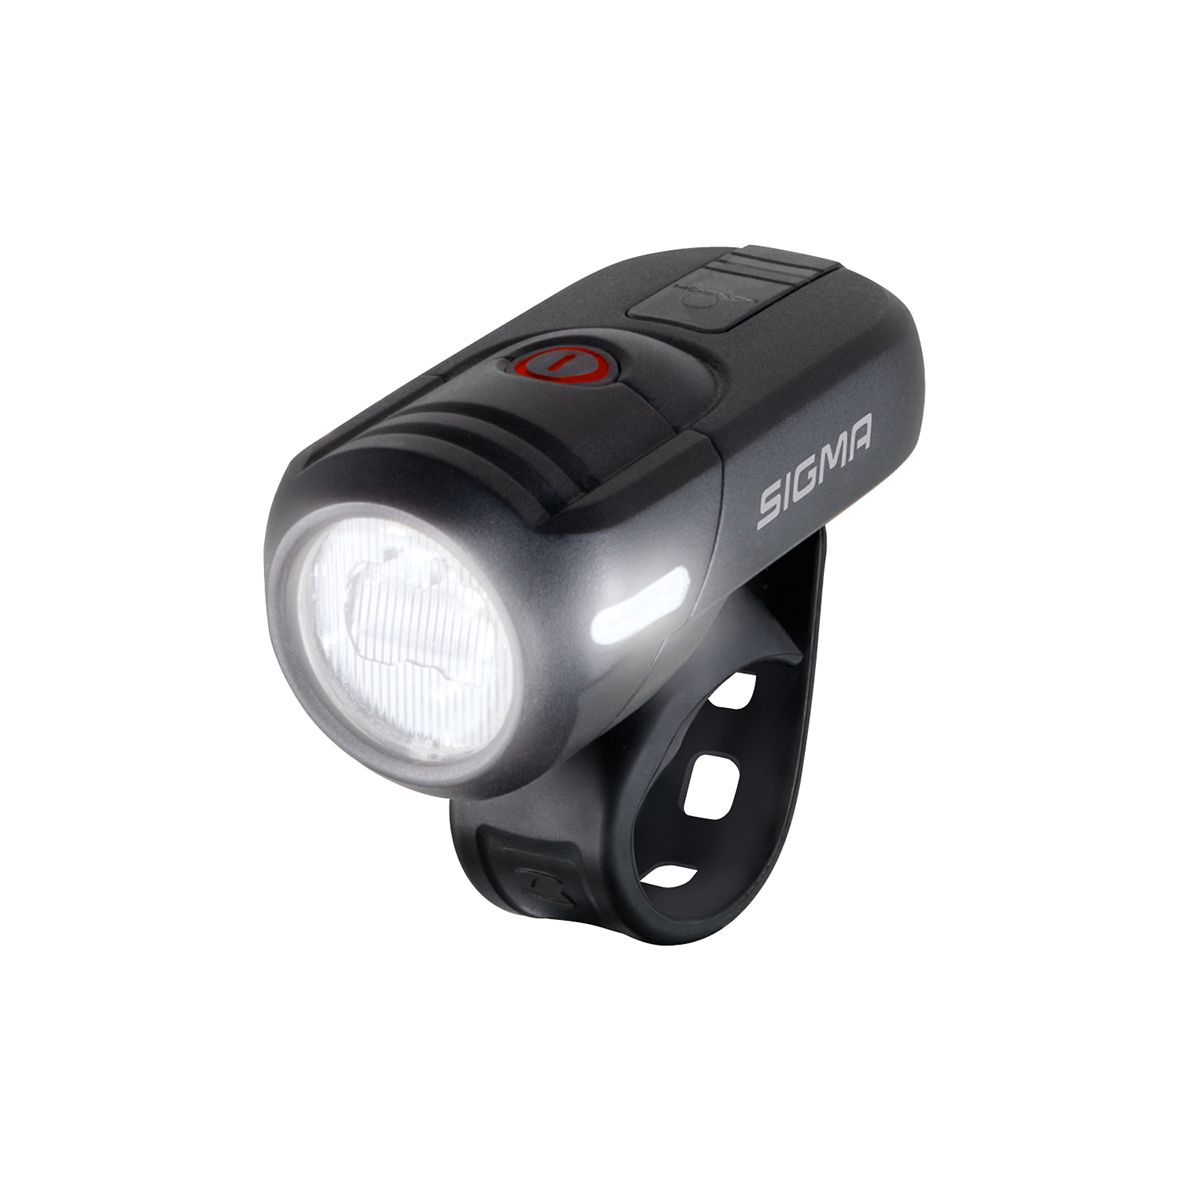 AURA 45 USB LED front light